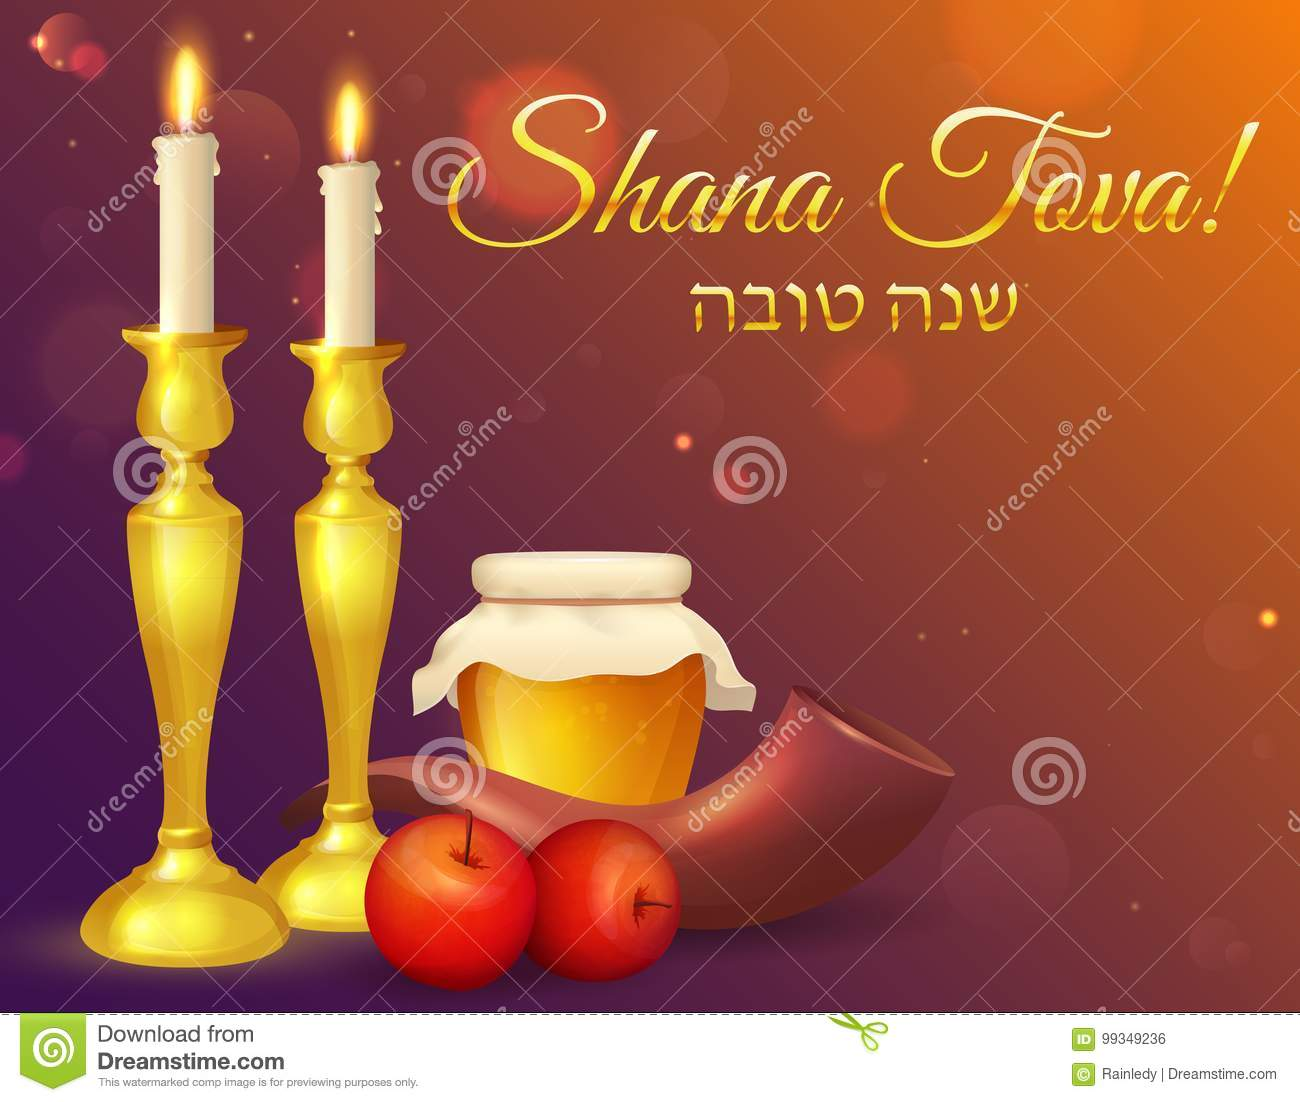 Shana tova rosh hashanah greeting card stock vector illustration rosh hashanah greeting card apple background kristyandbryce Choice Image